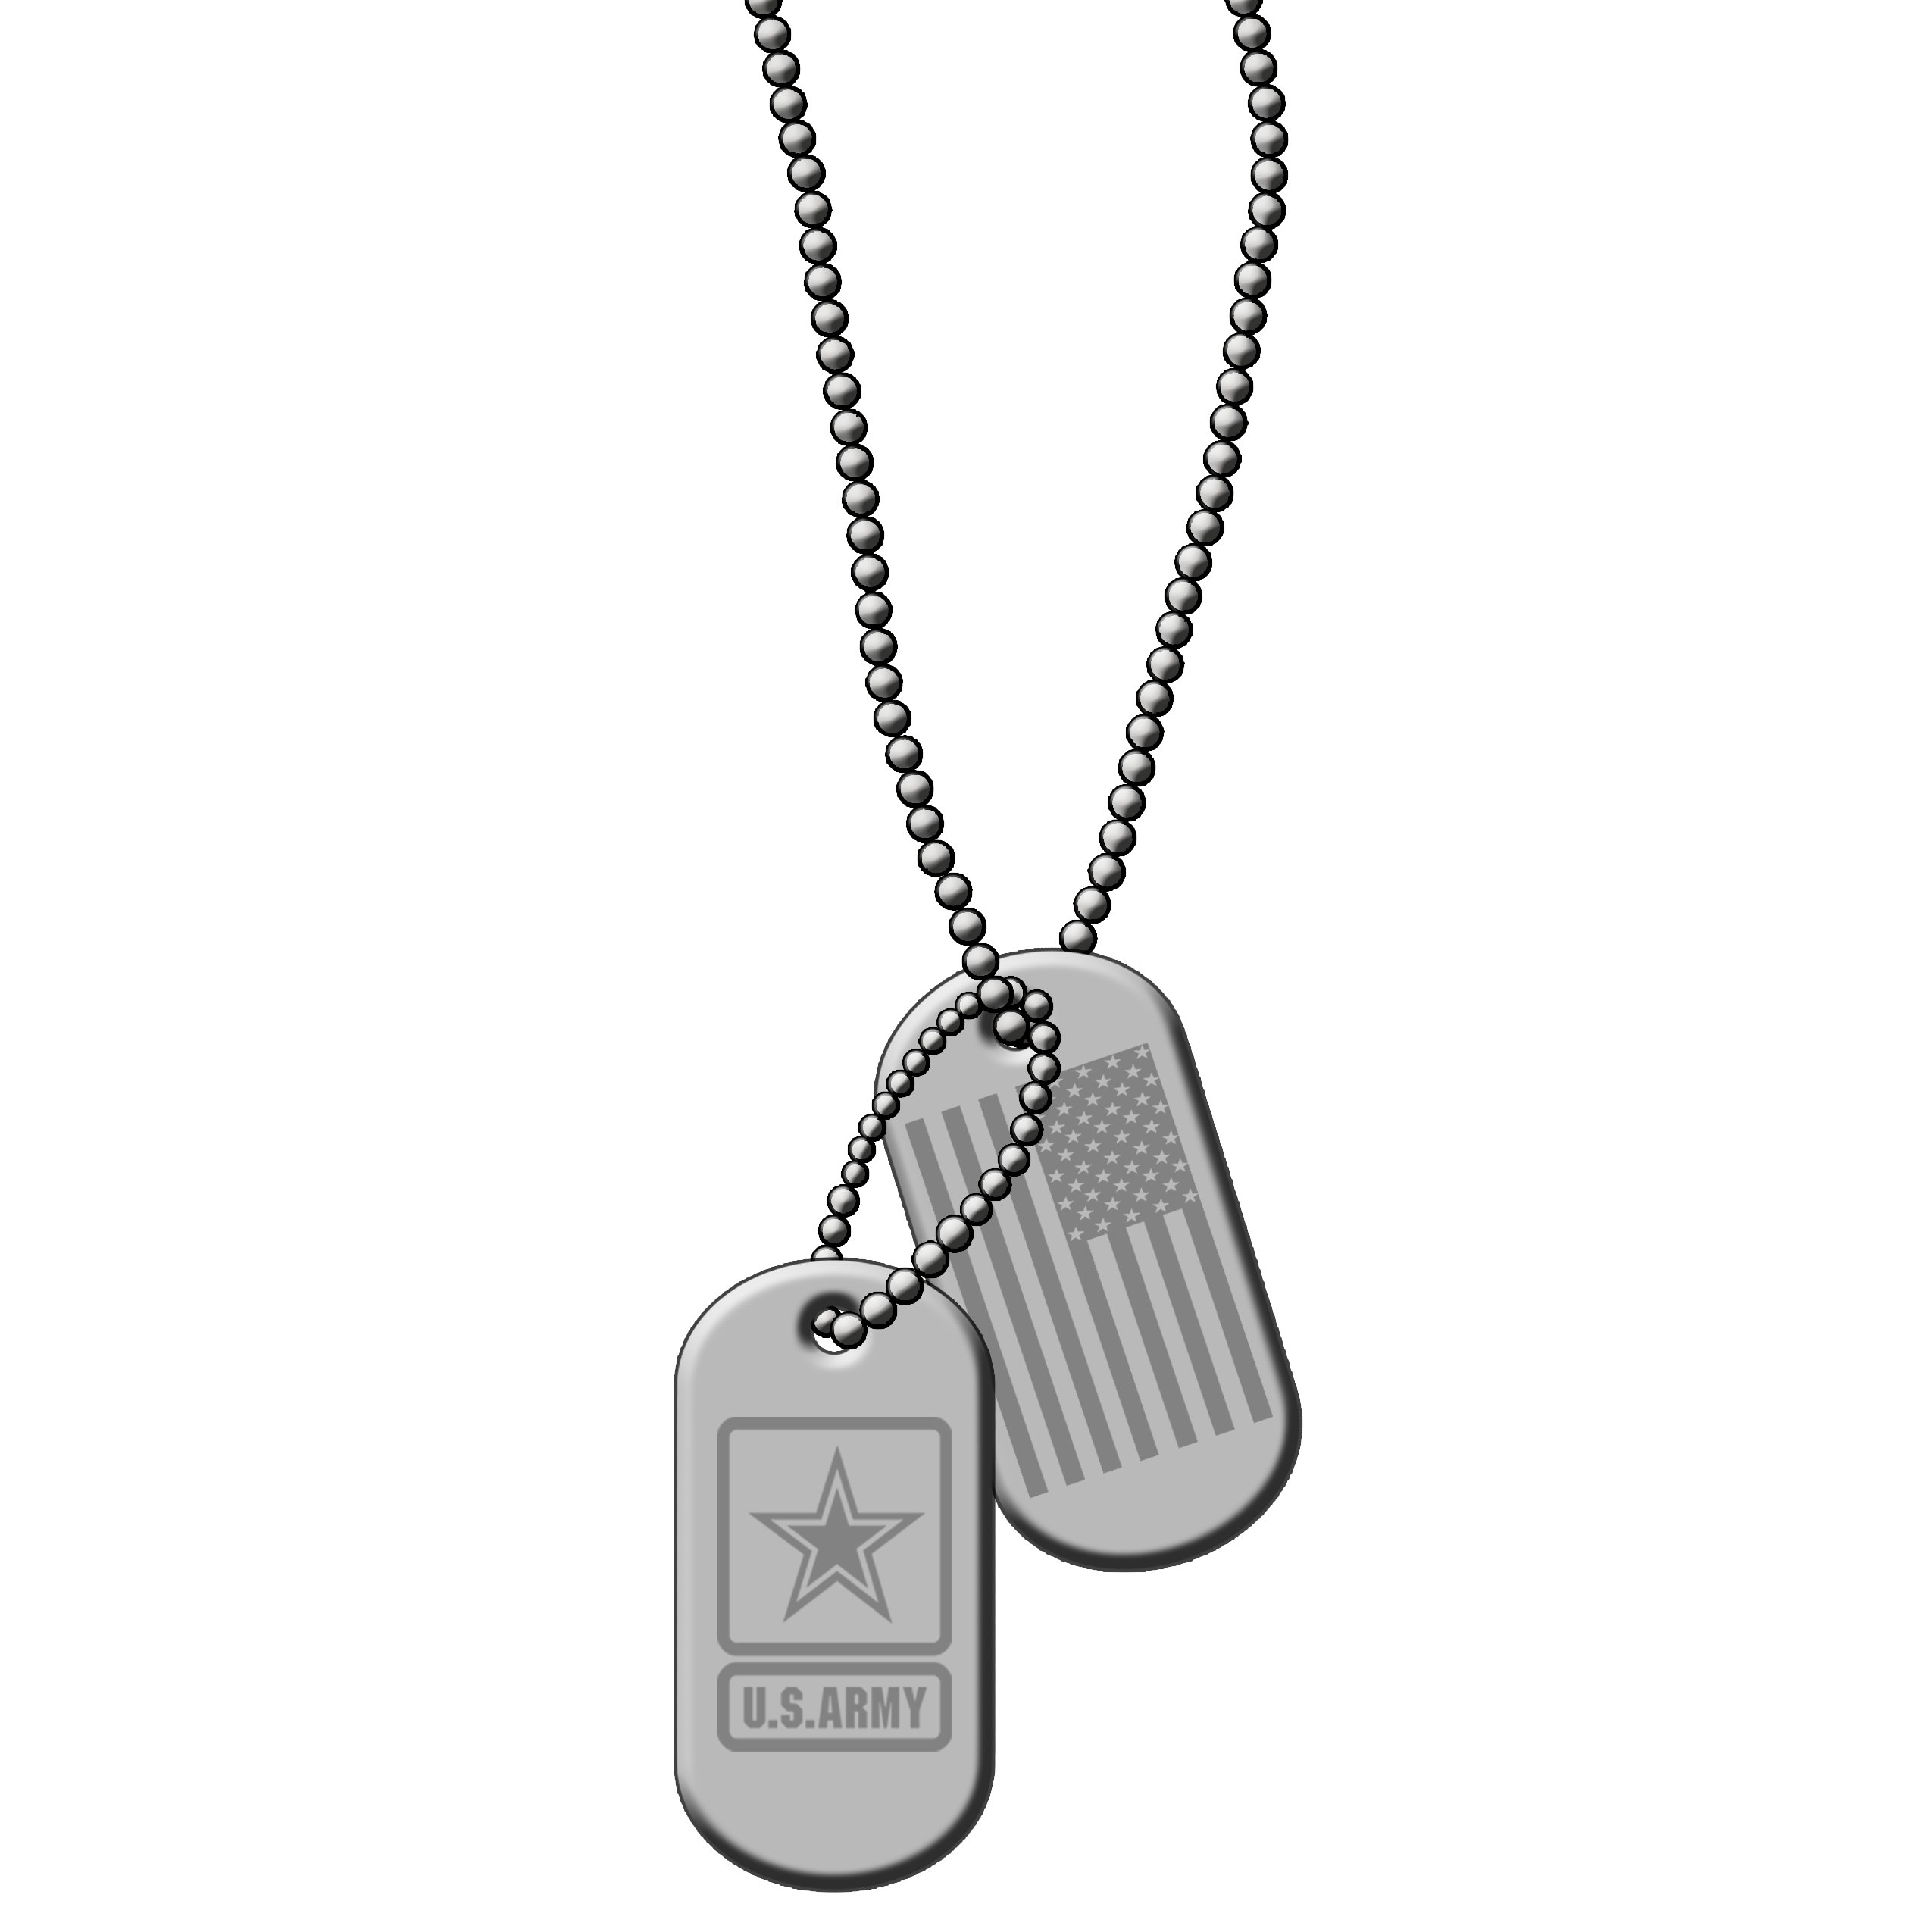 Military clipart military family. Id dog tags silver